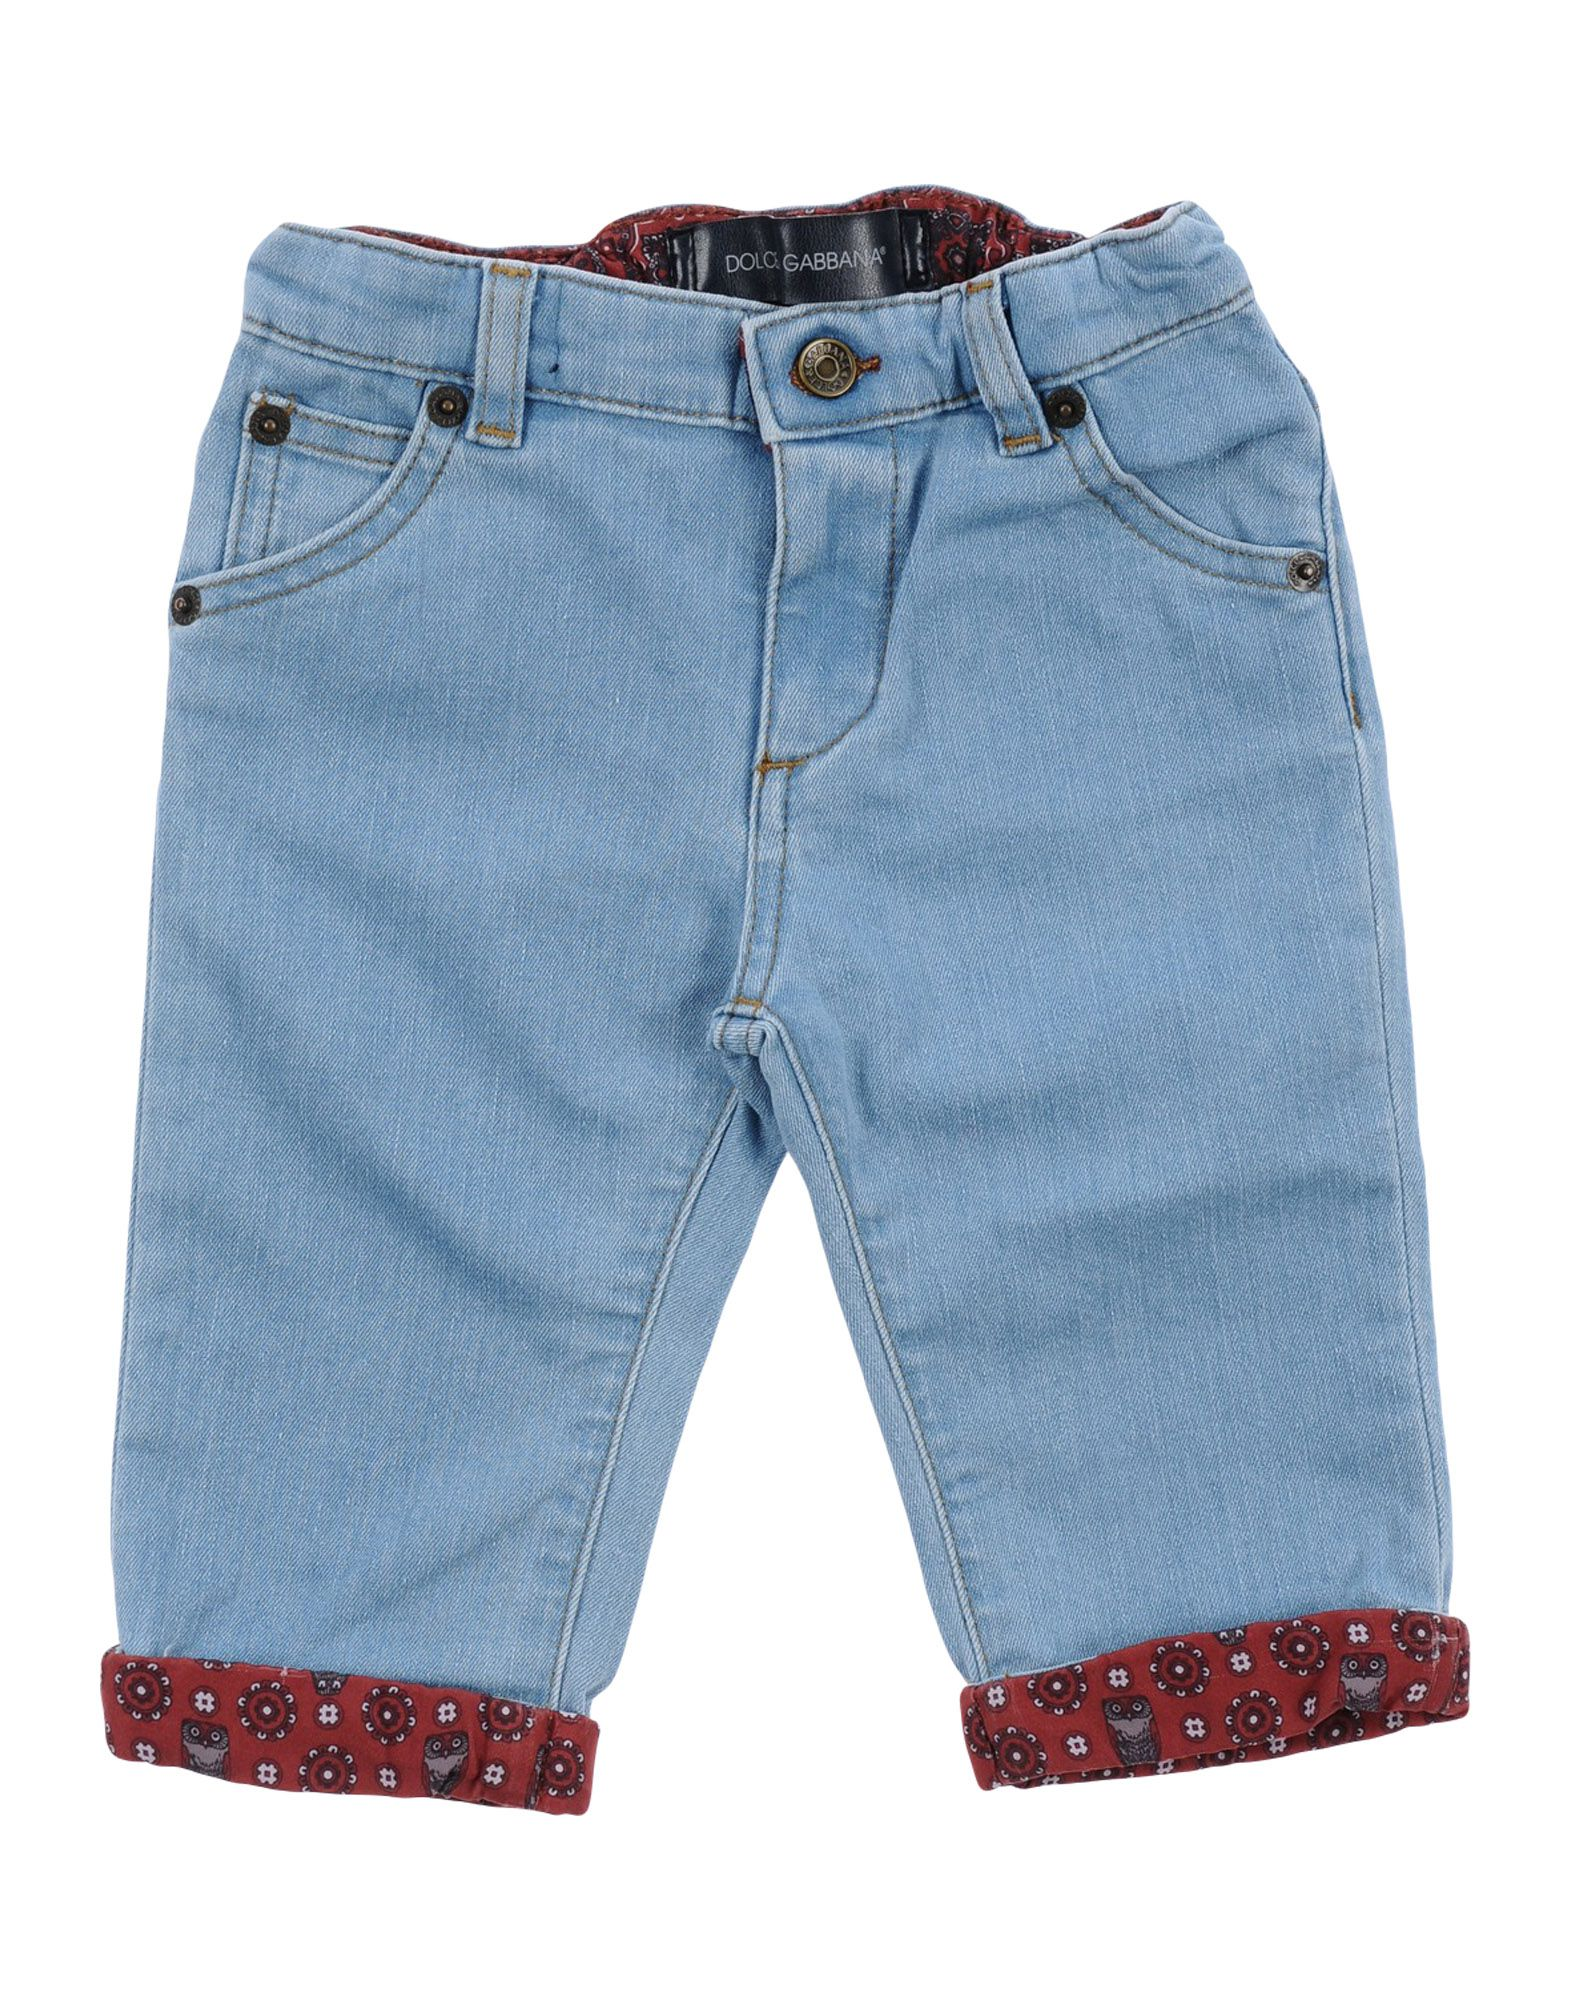 Dolce & Gabbana clothing for baby boy & toddler 0 24 months